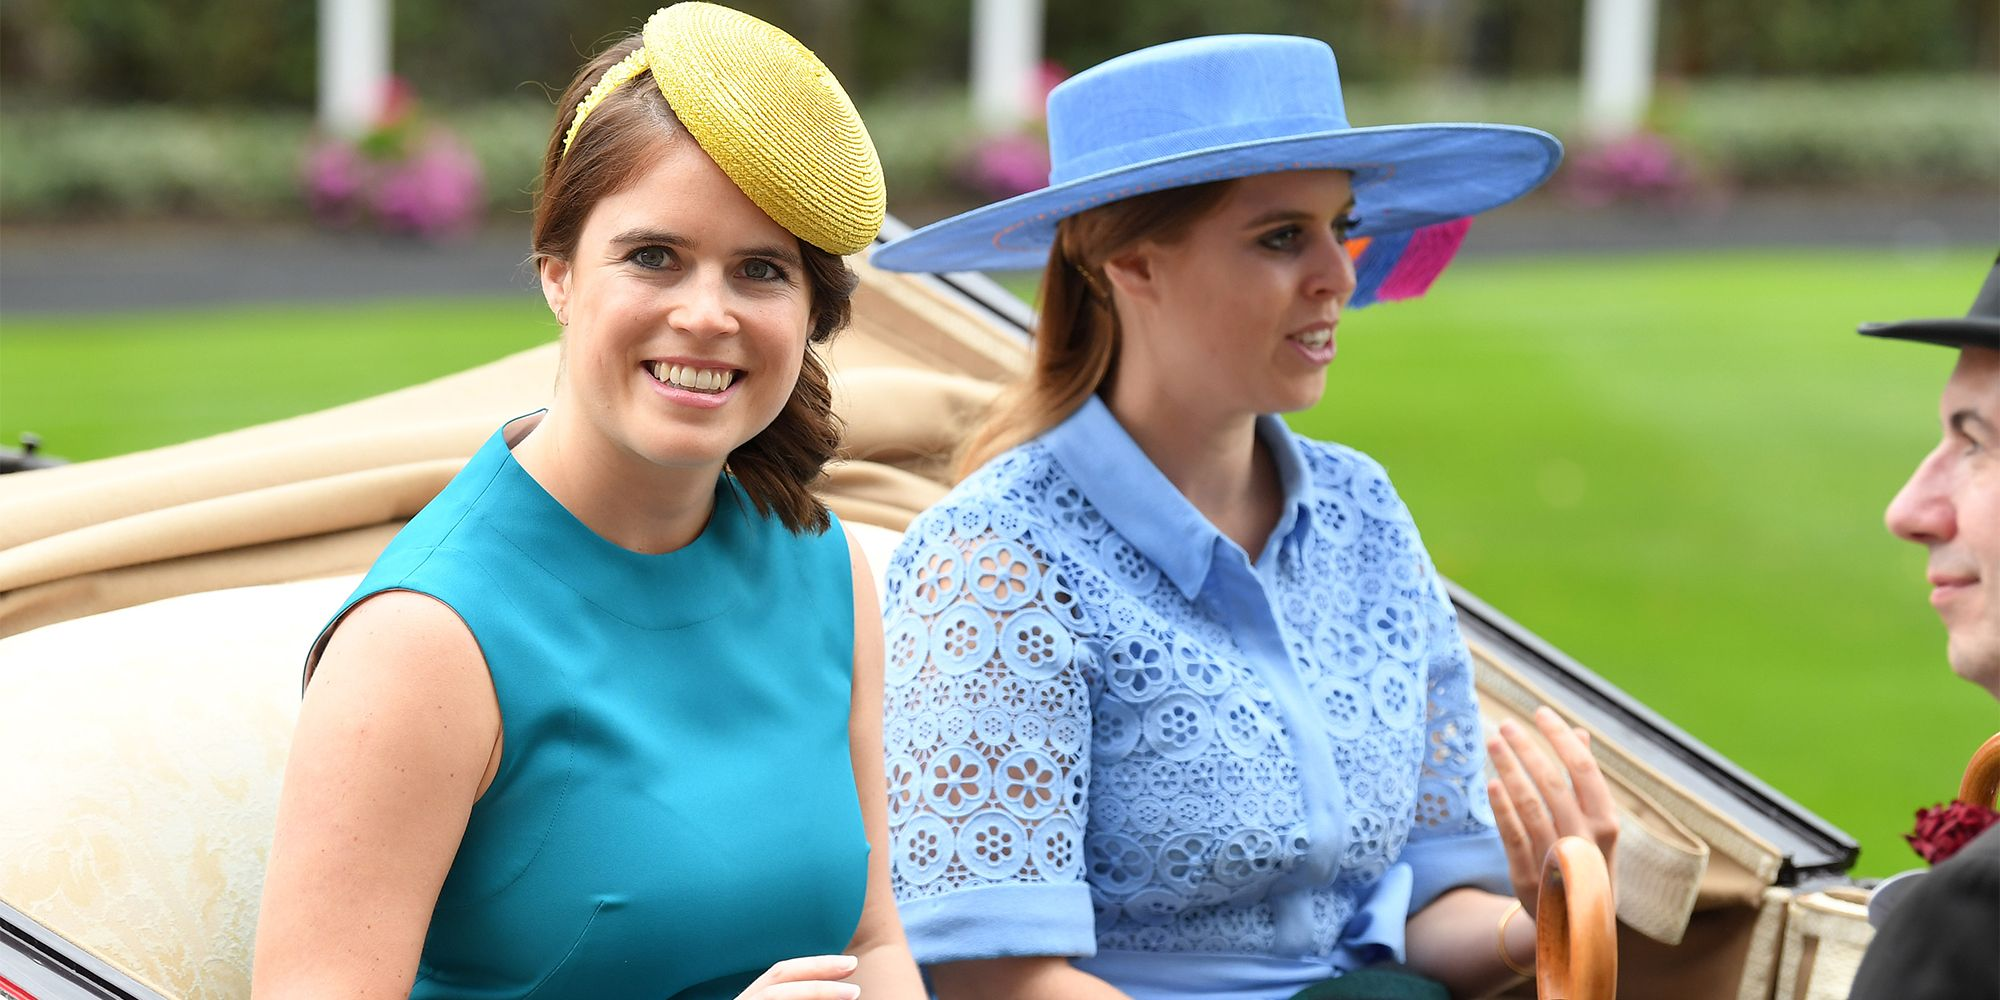 Every Photo from the 2019 Royal Ascot